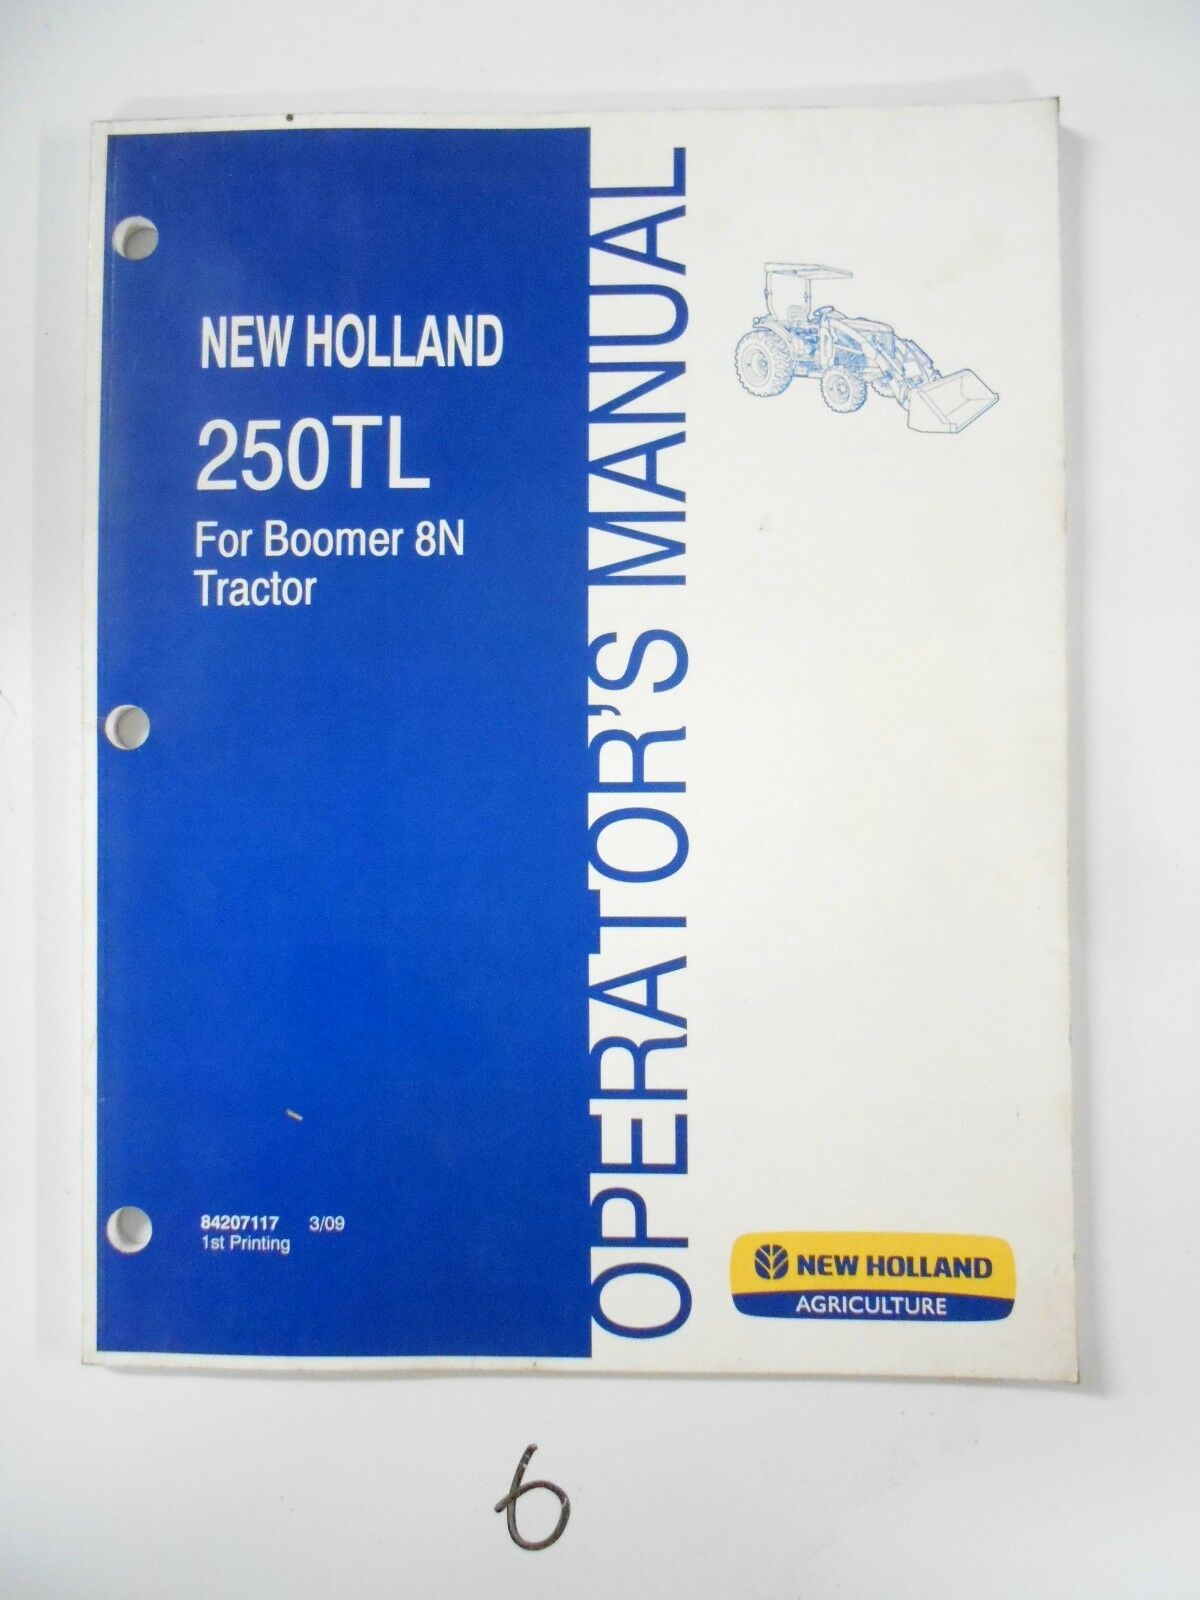 new holland 250tl loader operator s owner s manual for boomer 8n rh picclick com New Holland TN65 Manual New Holland TC30 Manual Downloadable